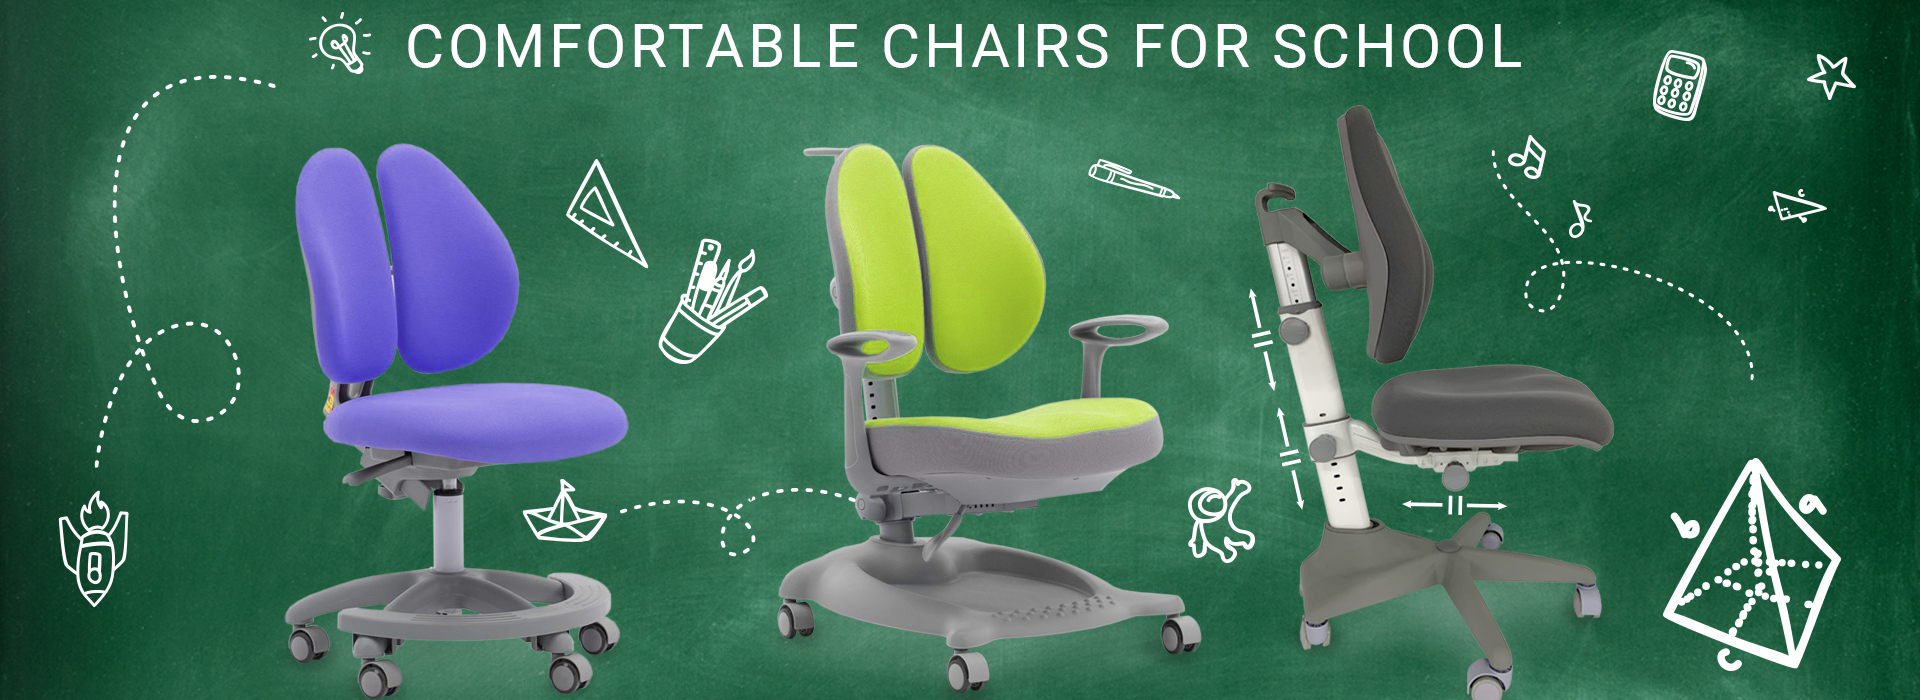 Comfortable GT Racer orthopedic chairs for school!